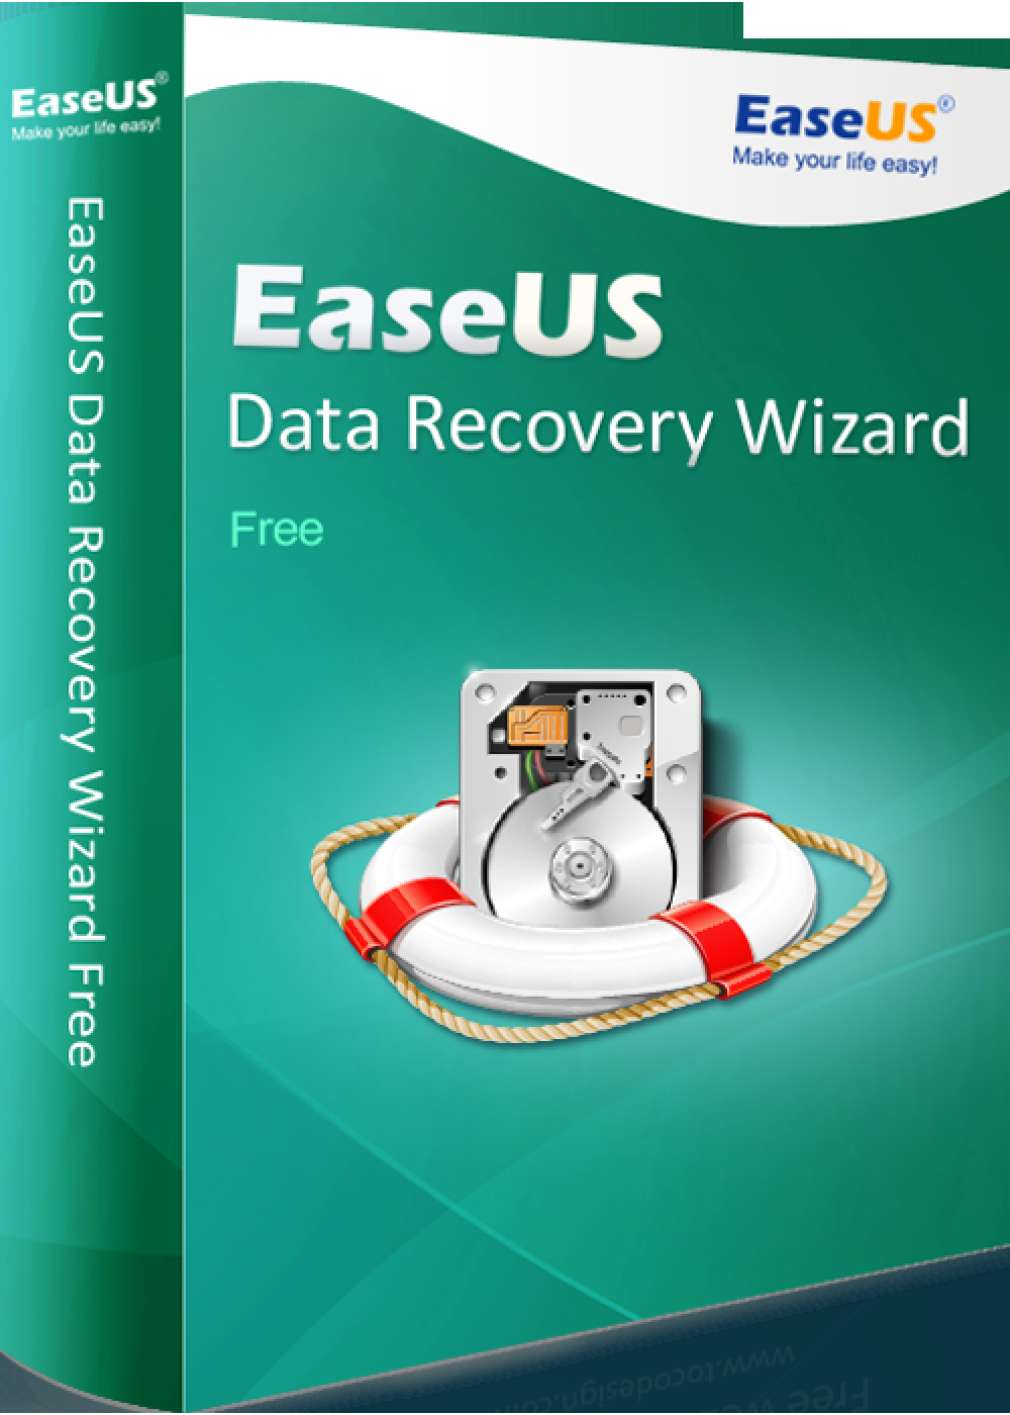 Data Loss _EaseUS Data recovery software